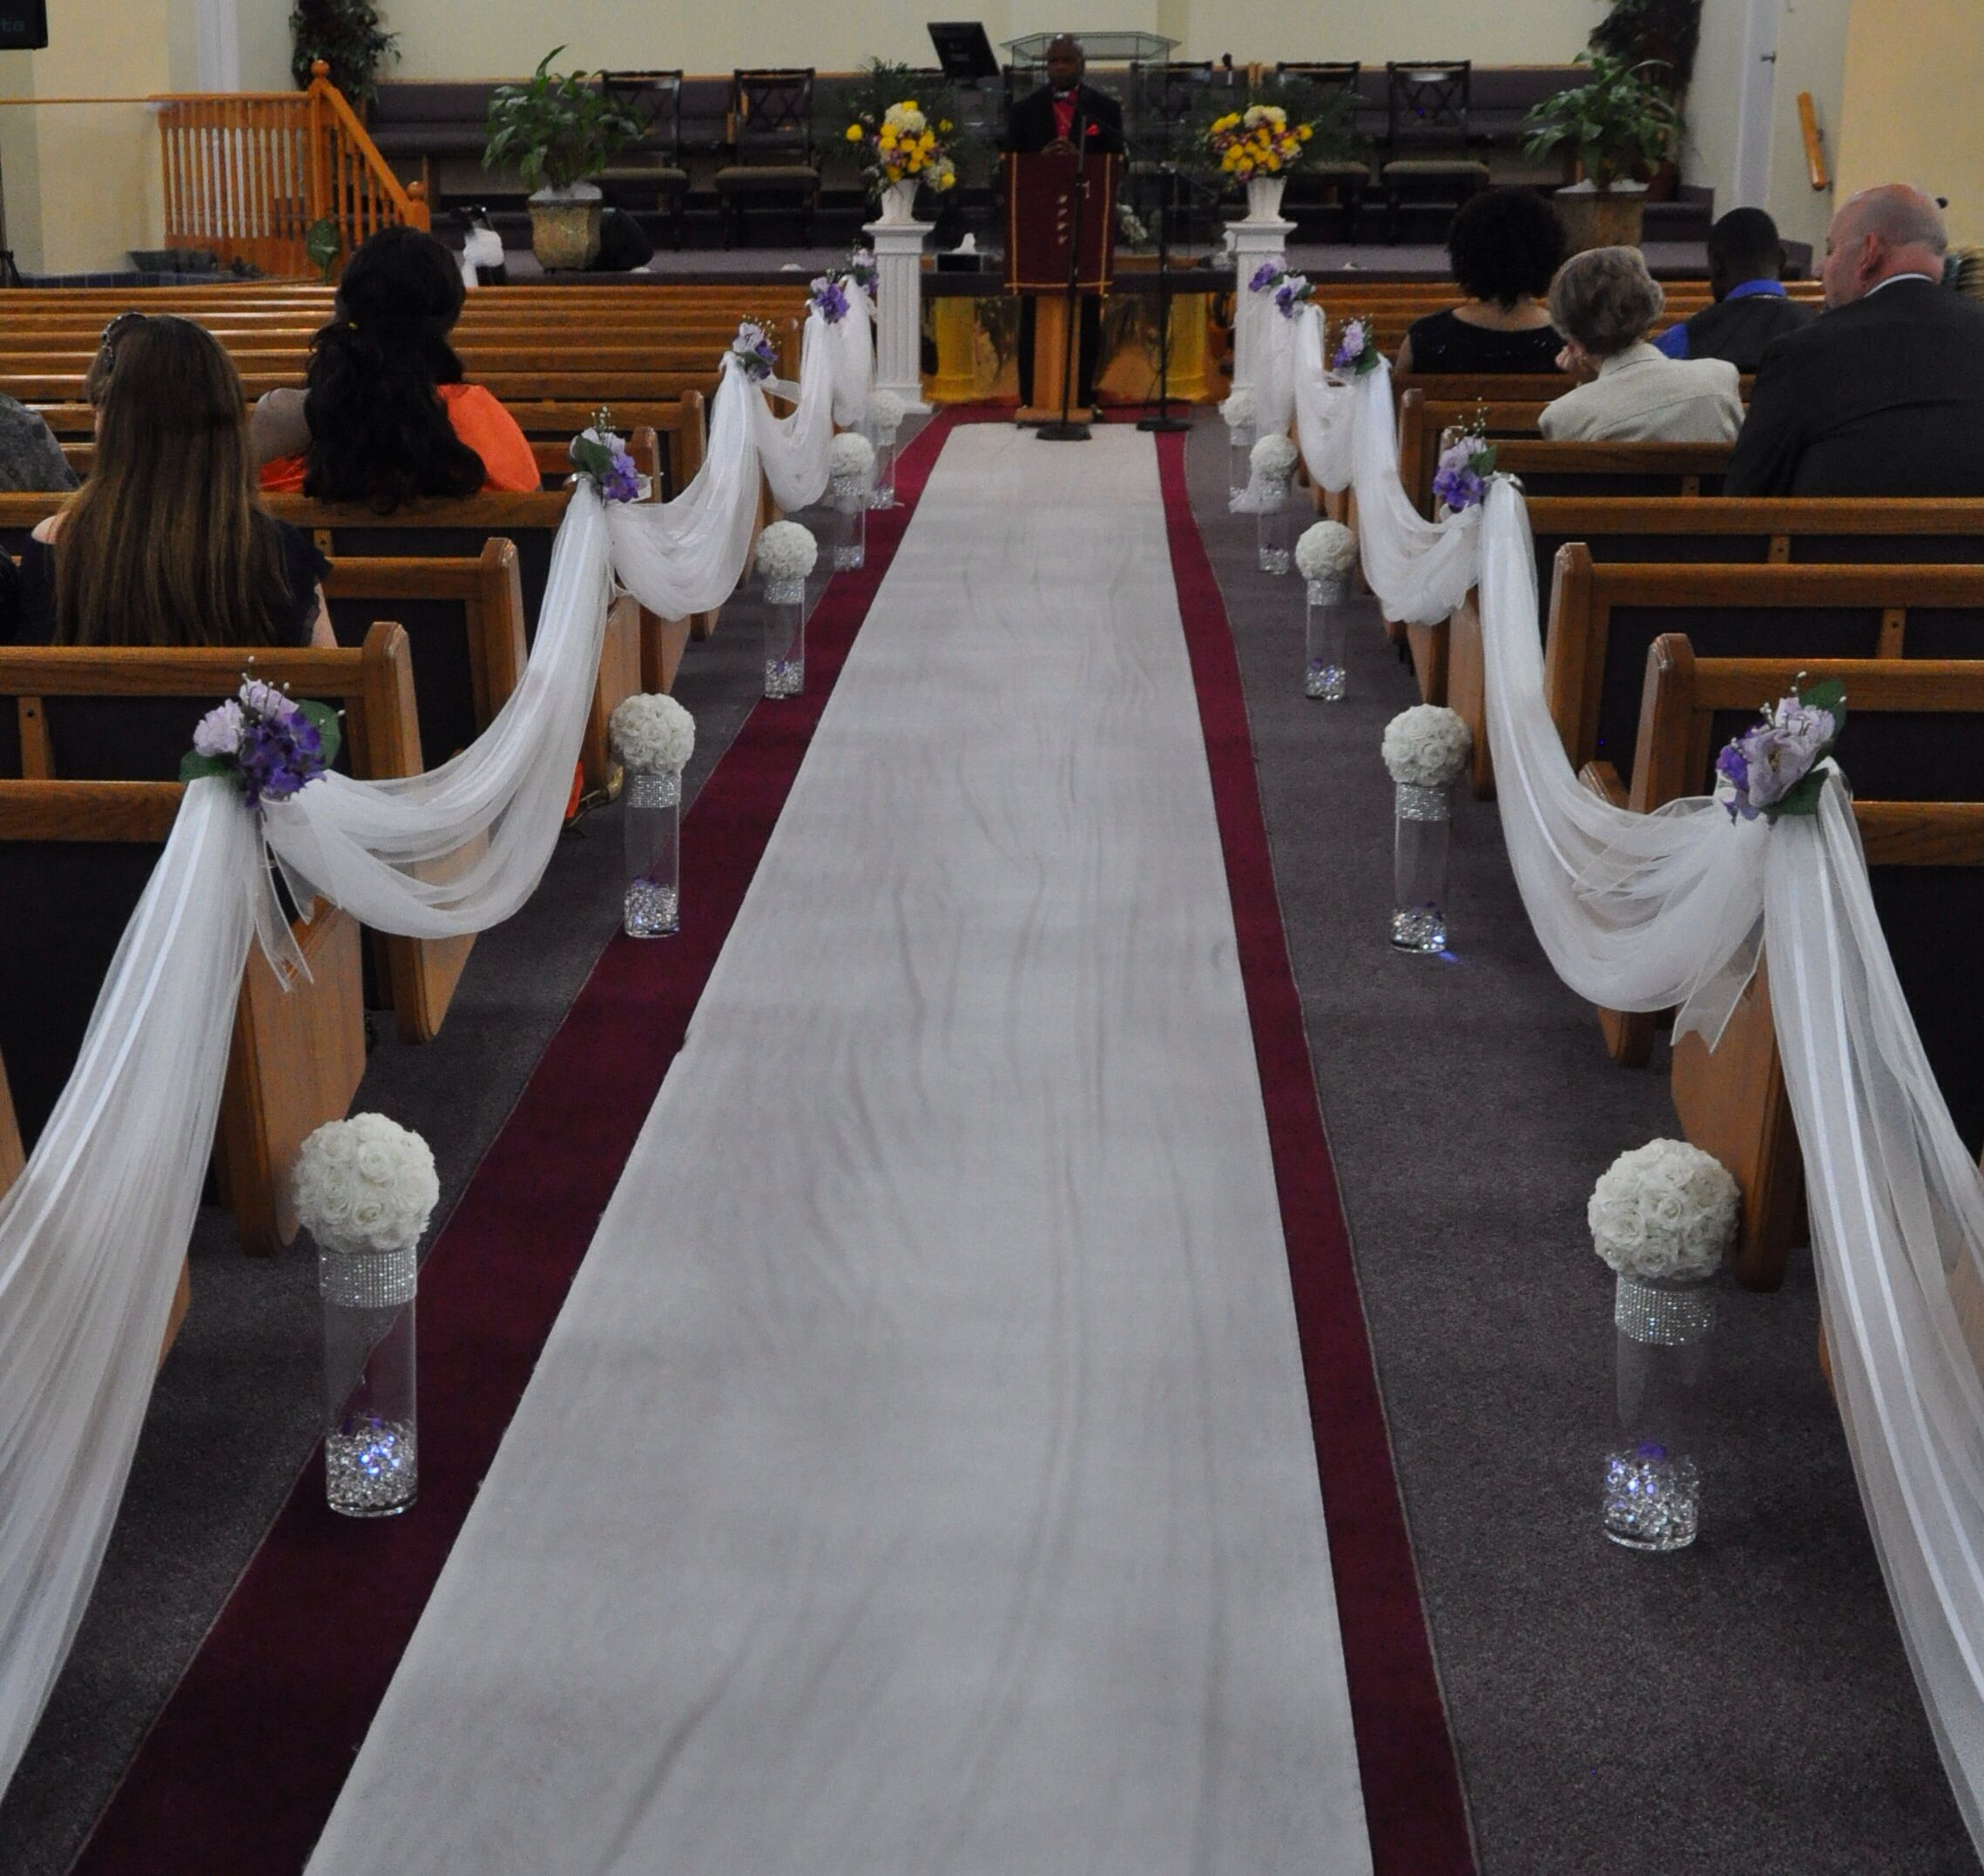 Church Pew Wedding Decoration Ideas: Church Wedding Decorations